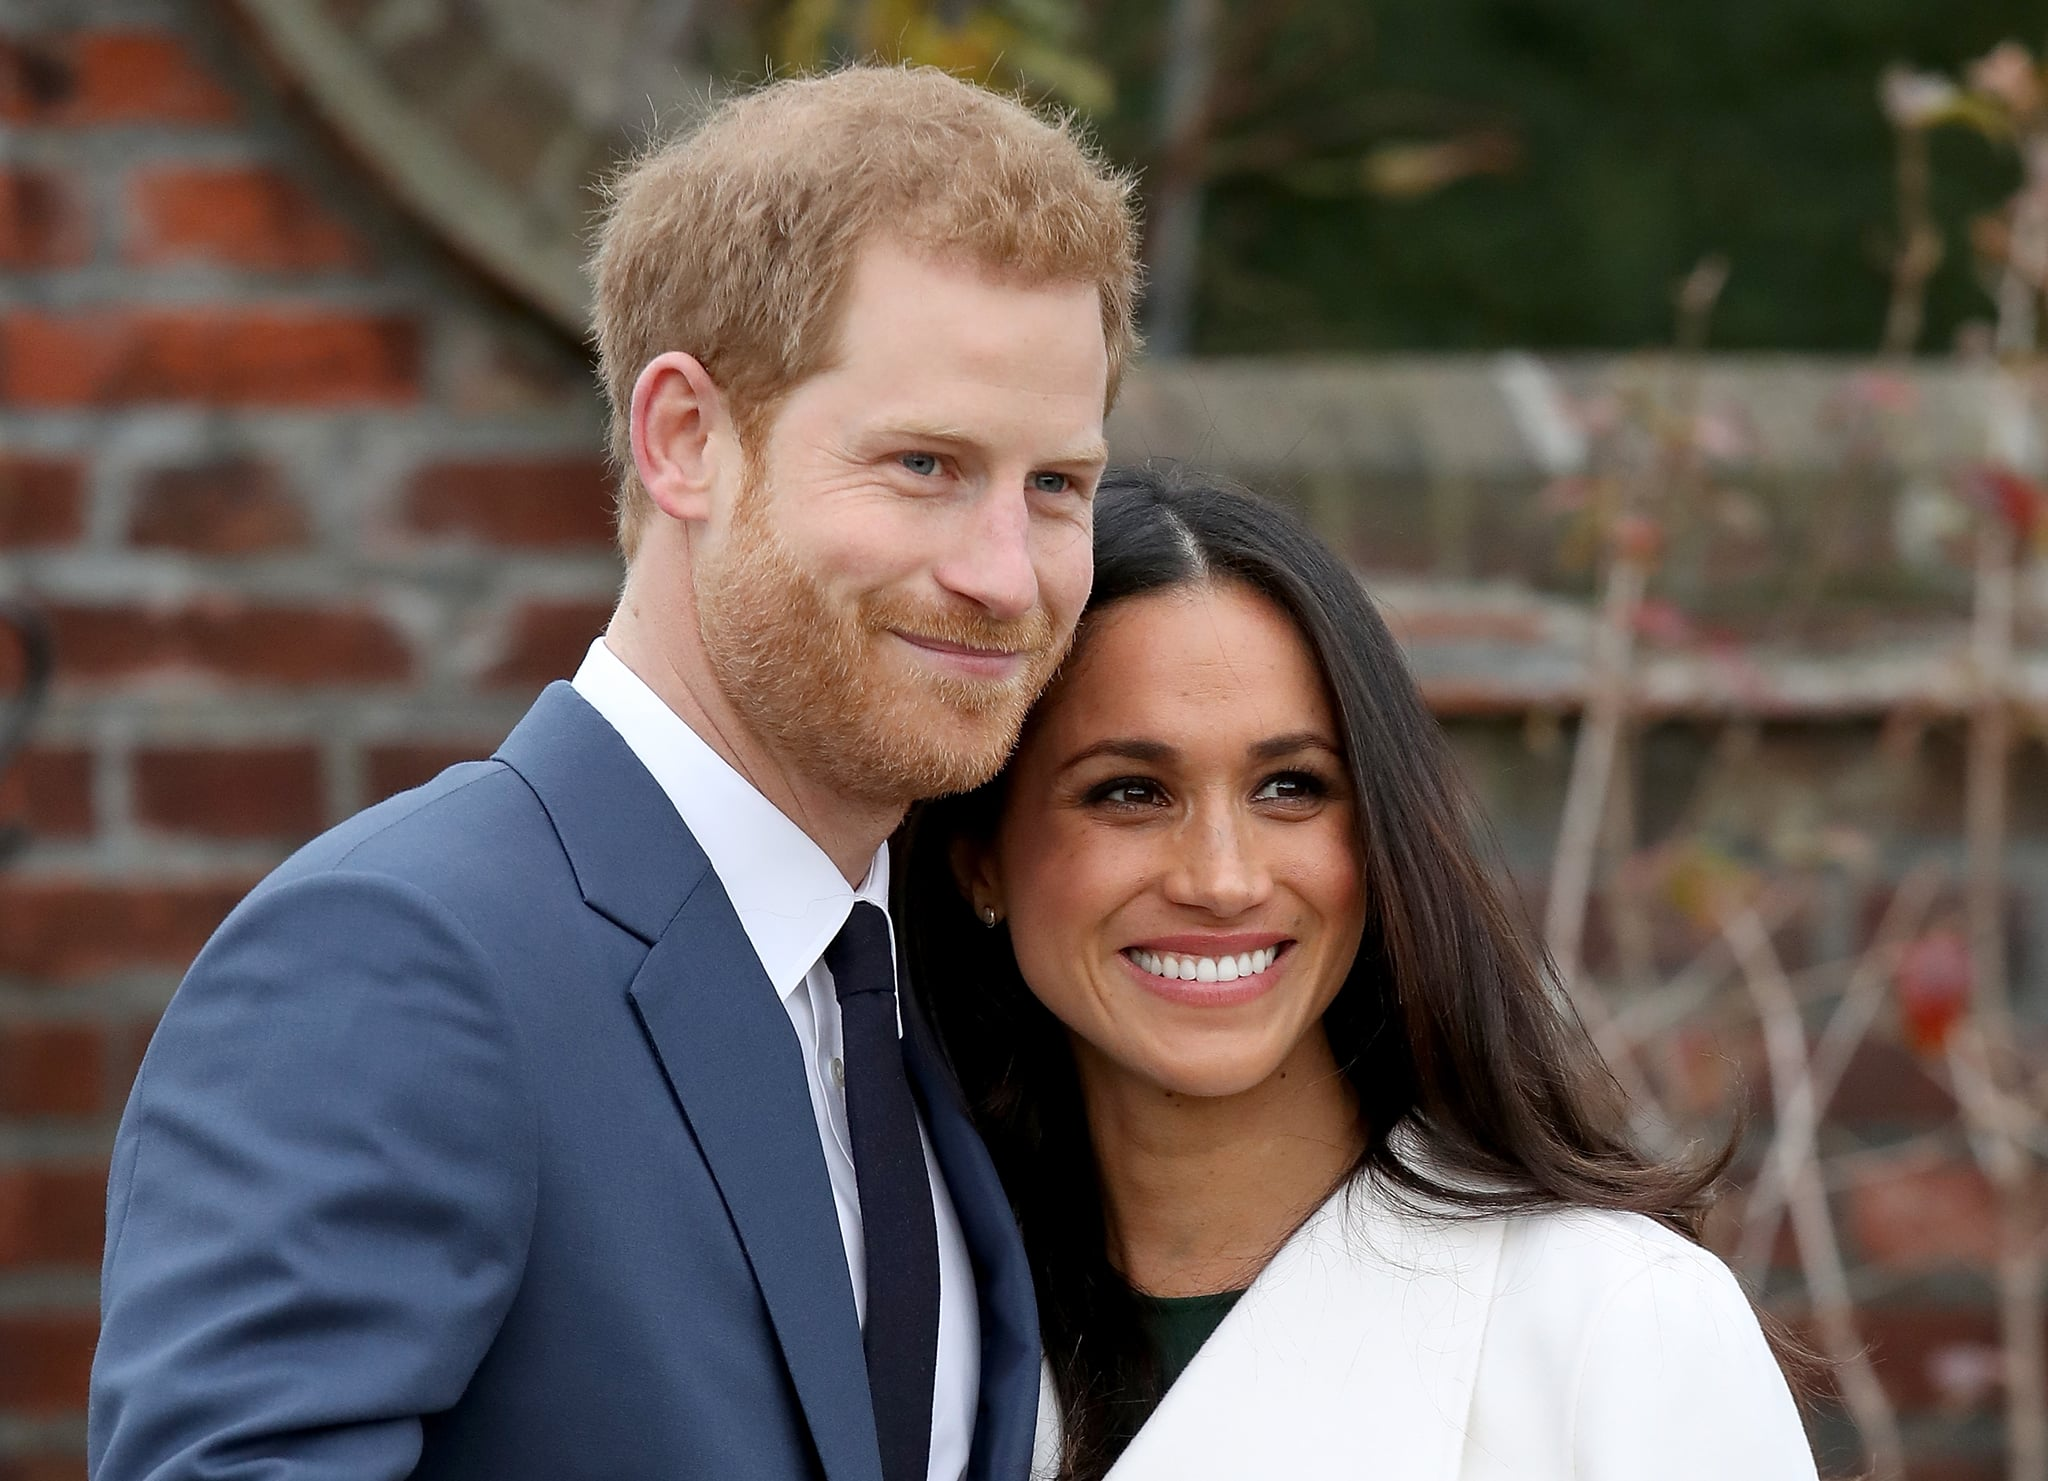 Watch The Royal Wedding.How To Watch The Royal Wedding In Theaters 2018 Popsugar Celebrity